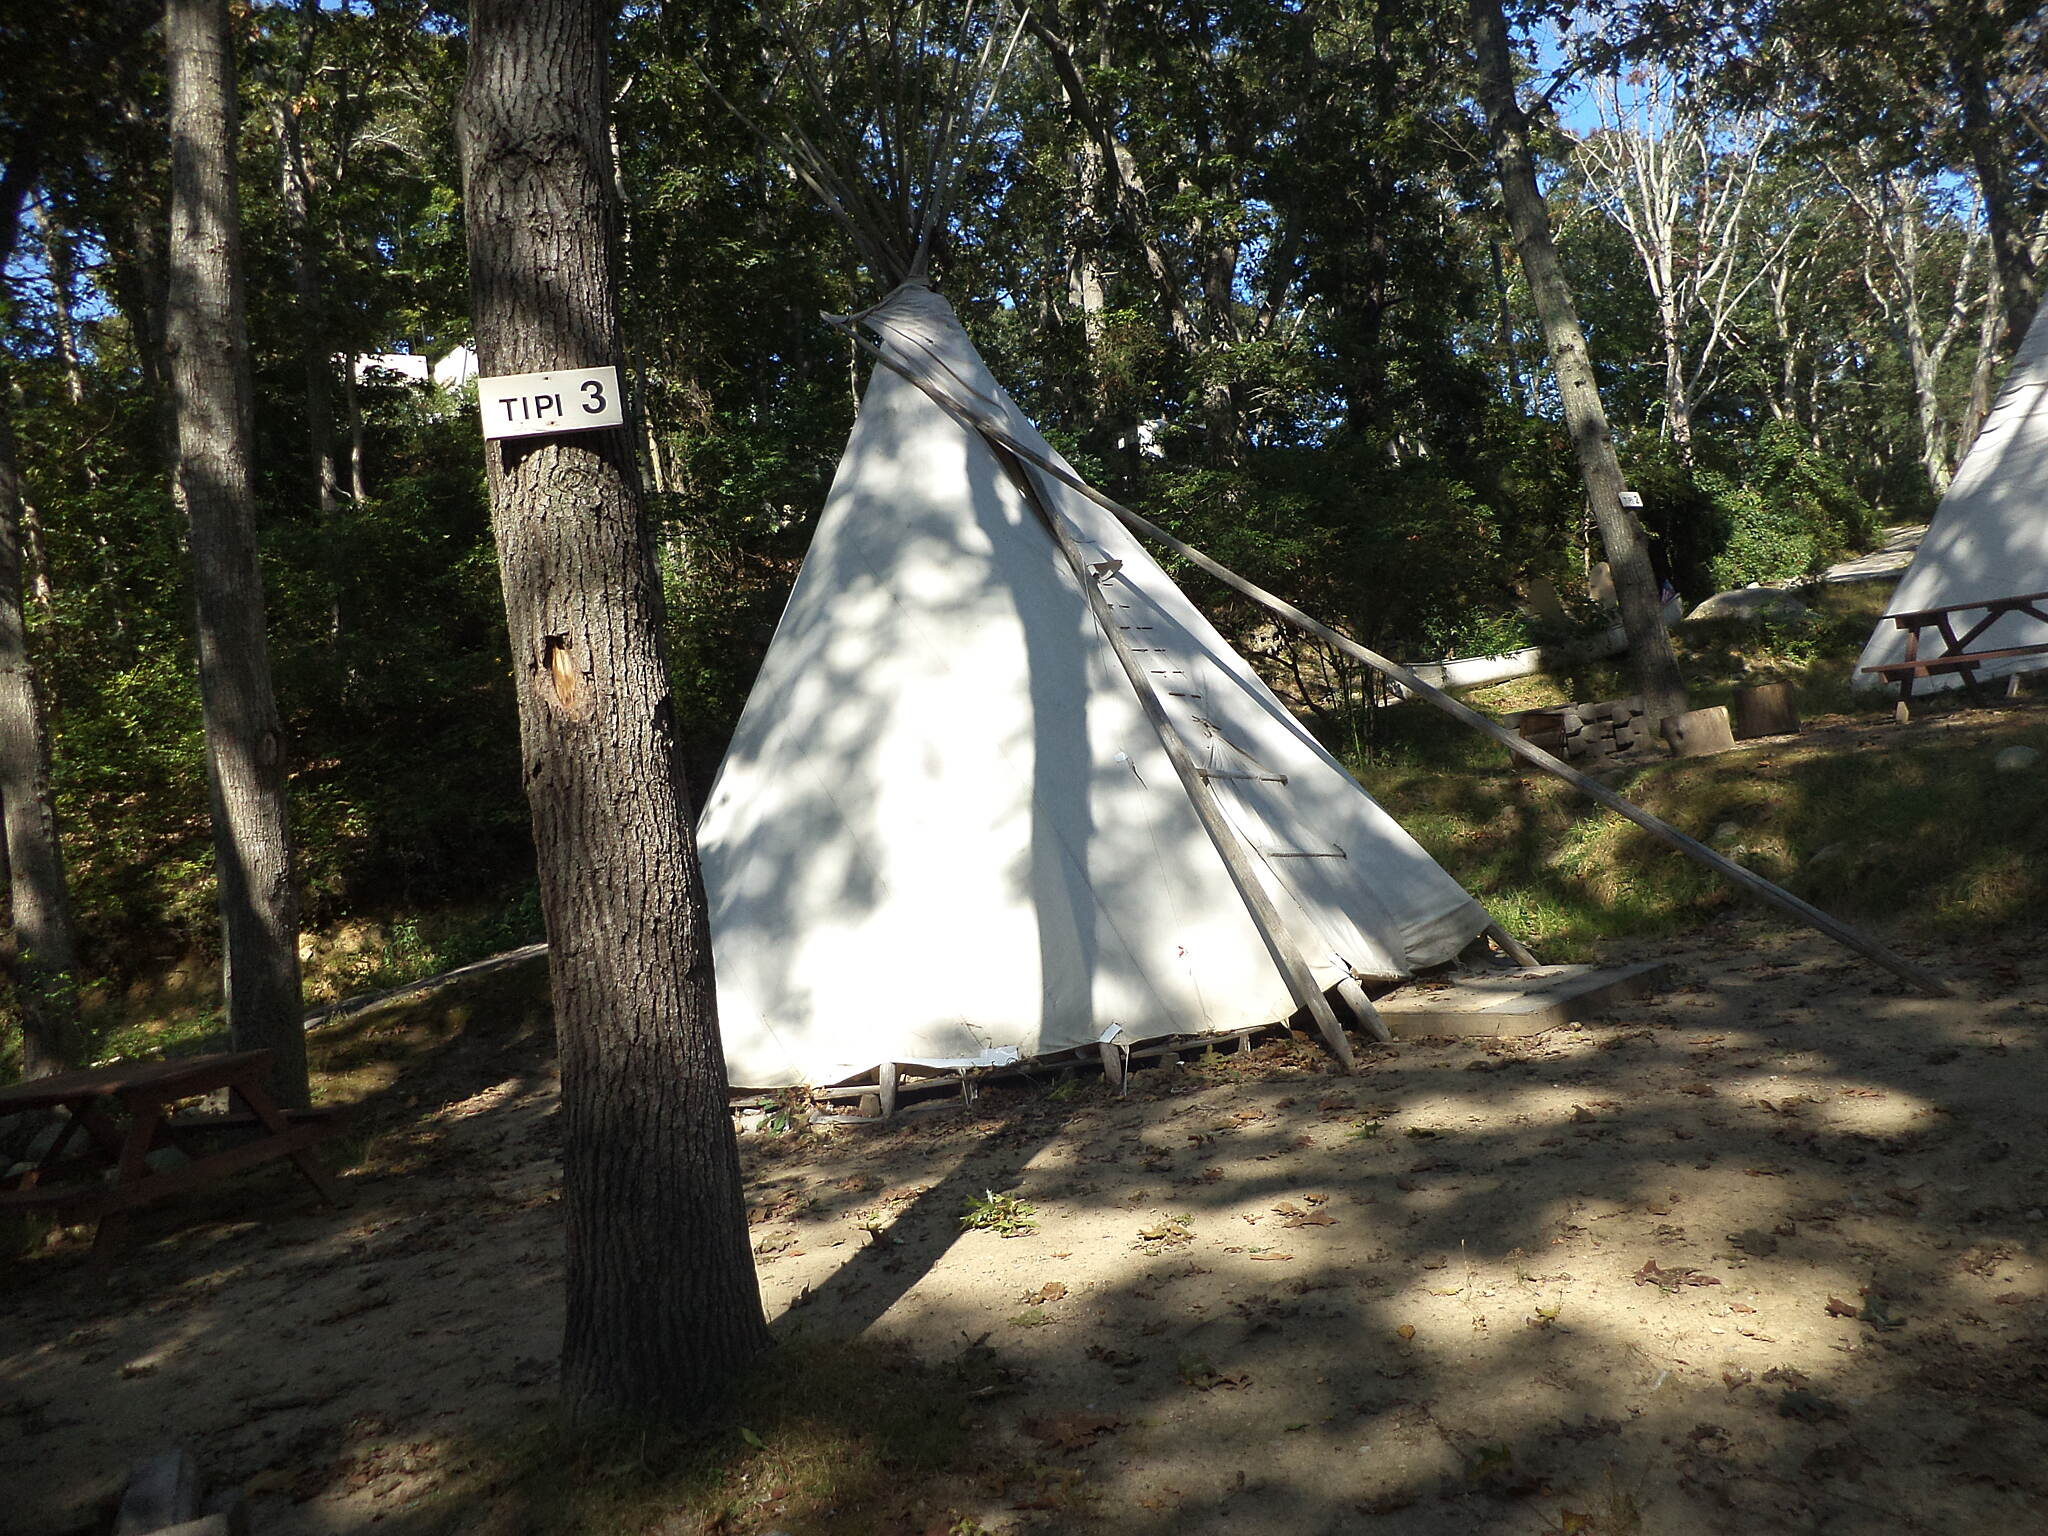 Shining Sea Bikeway Sippewissett Camp Ground Three tipis occupy this camp ground off the Shining Sea Path.